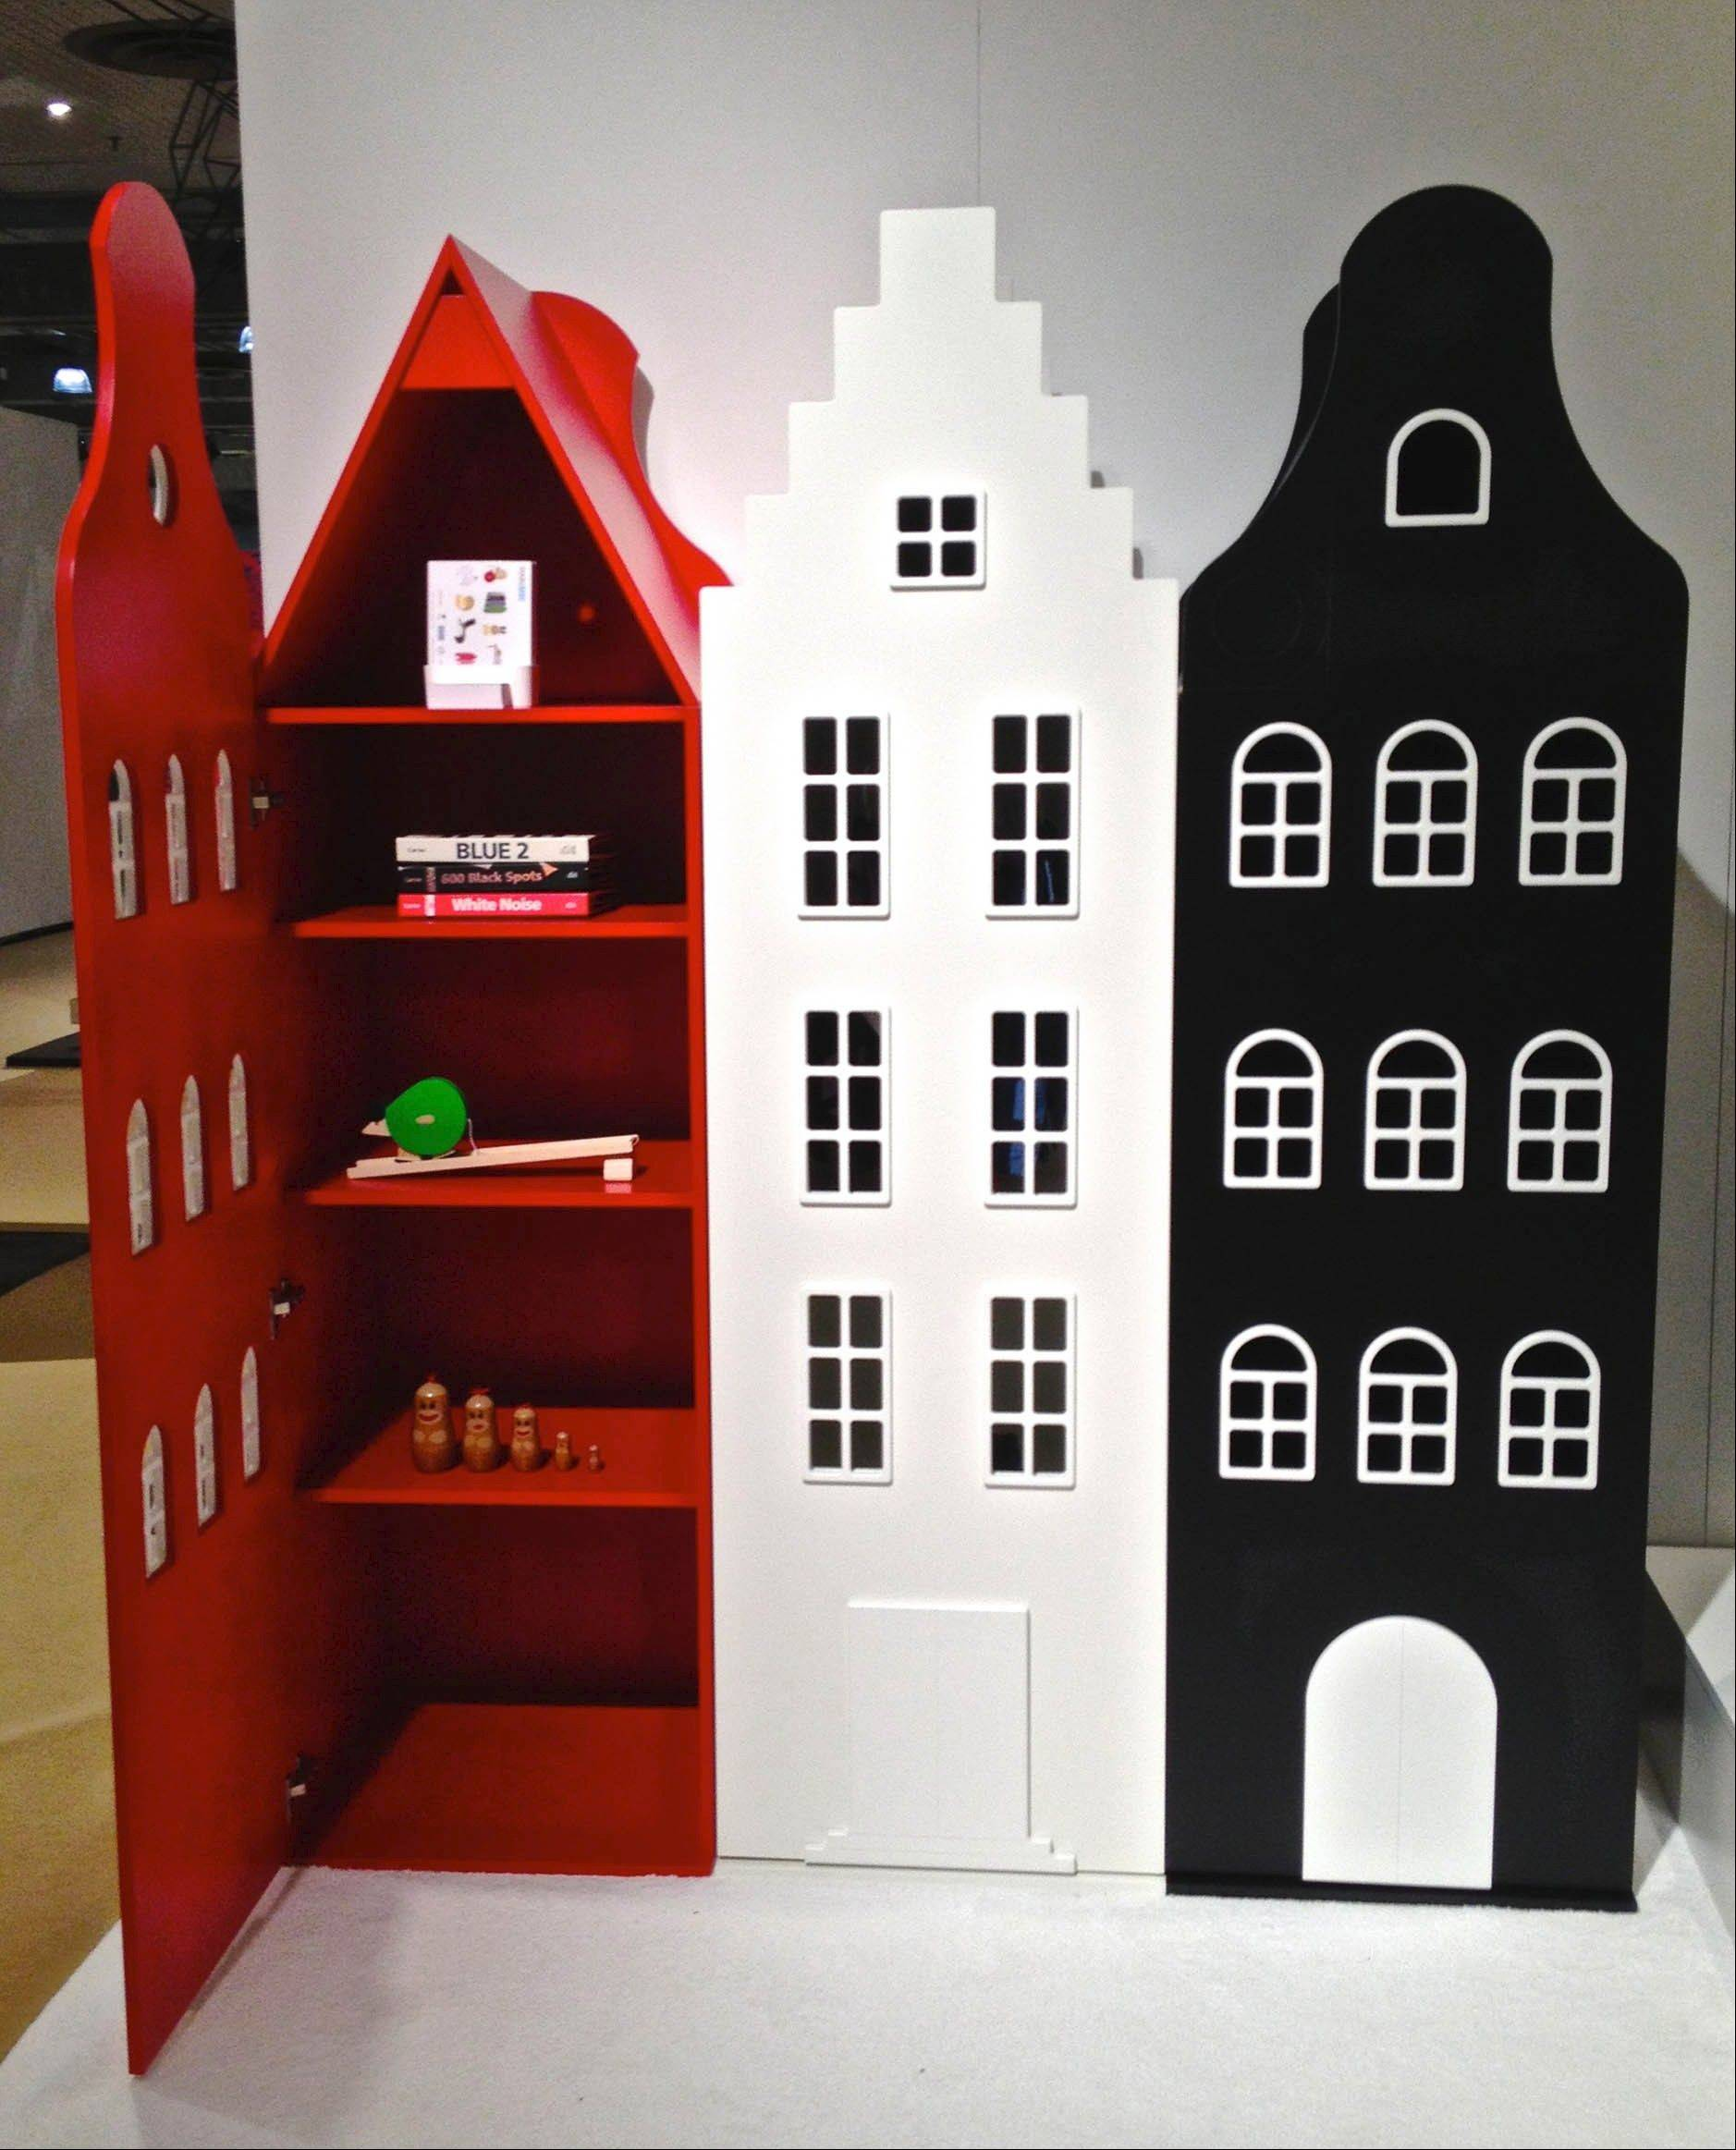 Cool Kids Company townhouse storage lockers.